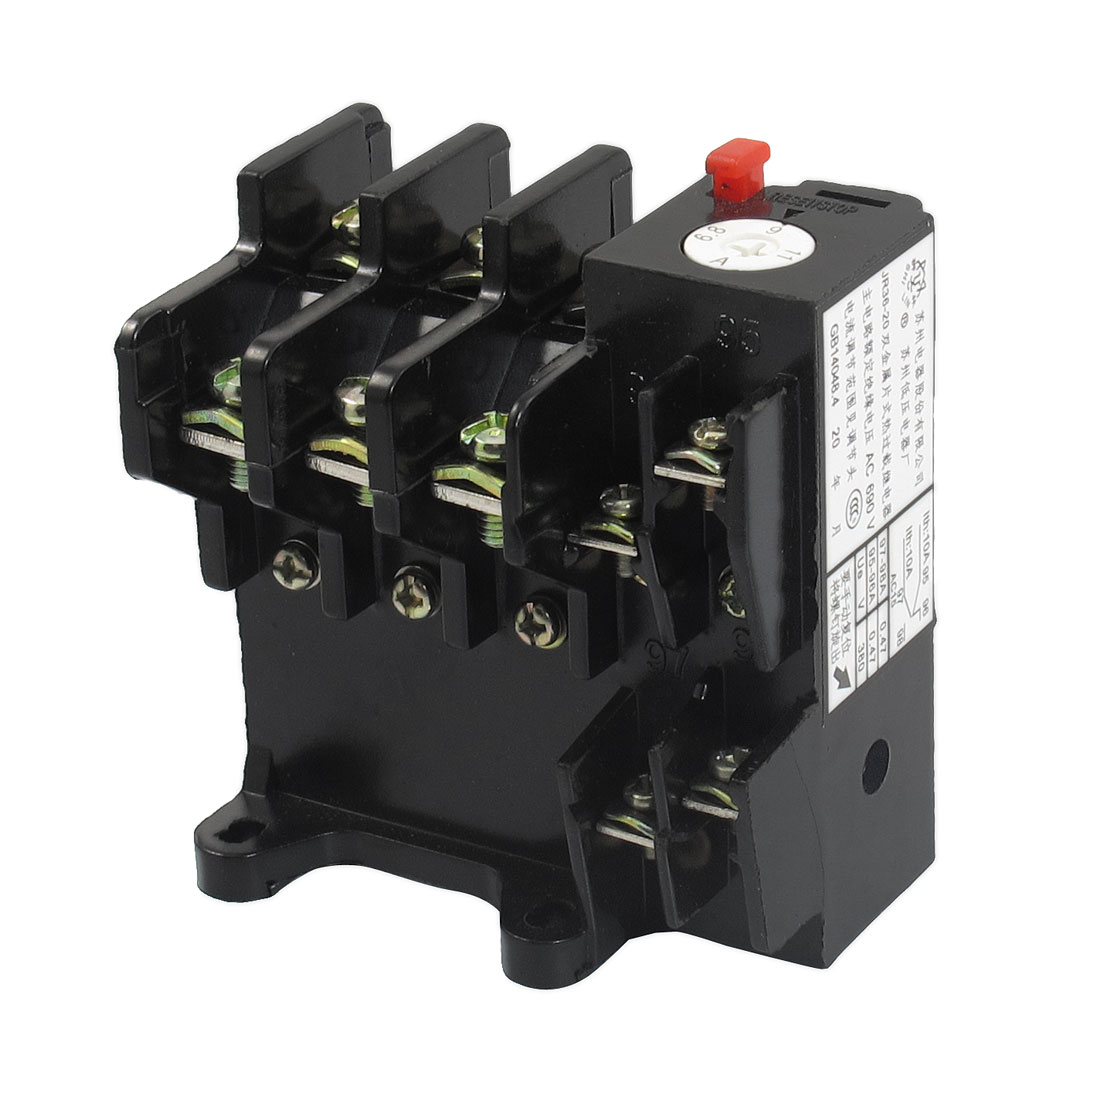 JR36-20 11Amp 6.8A-11A Adjustable 3 Pole Thermal Overload Relay 1NO 1NC